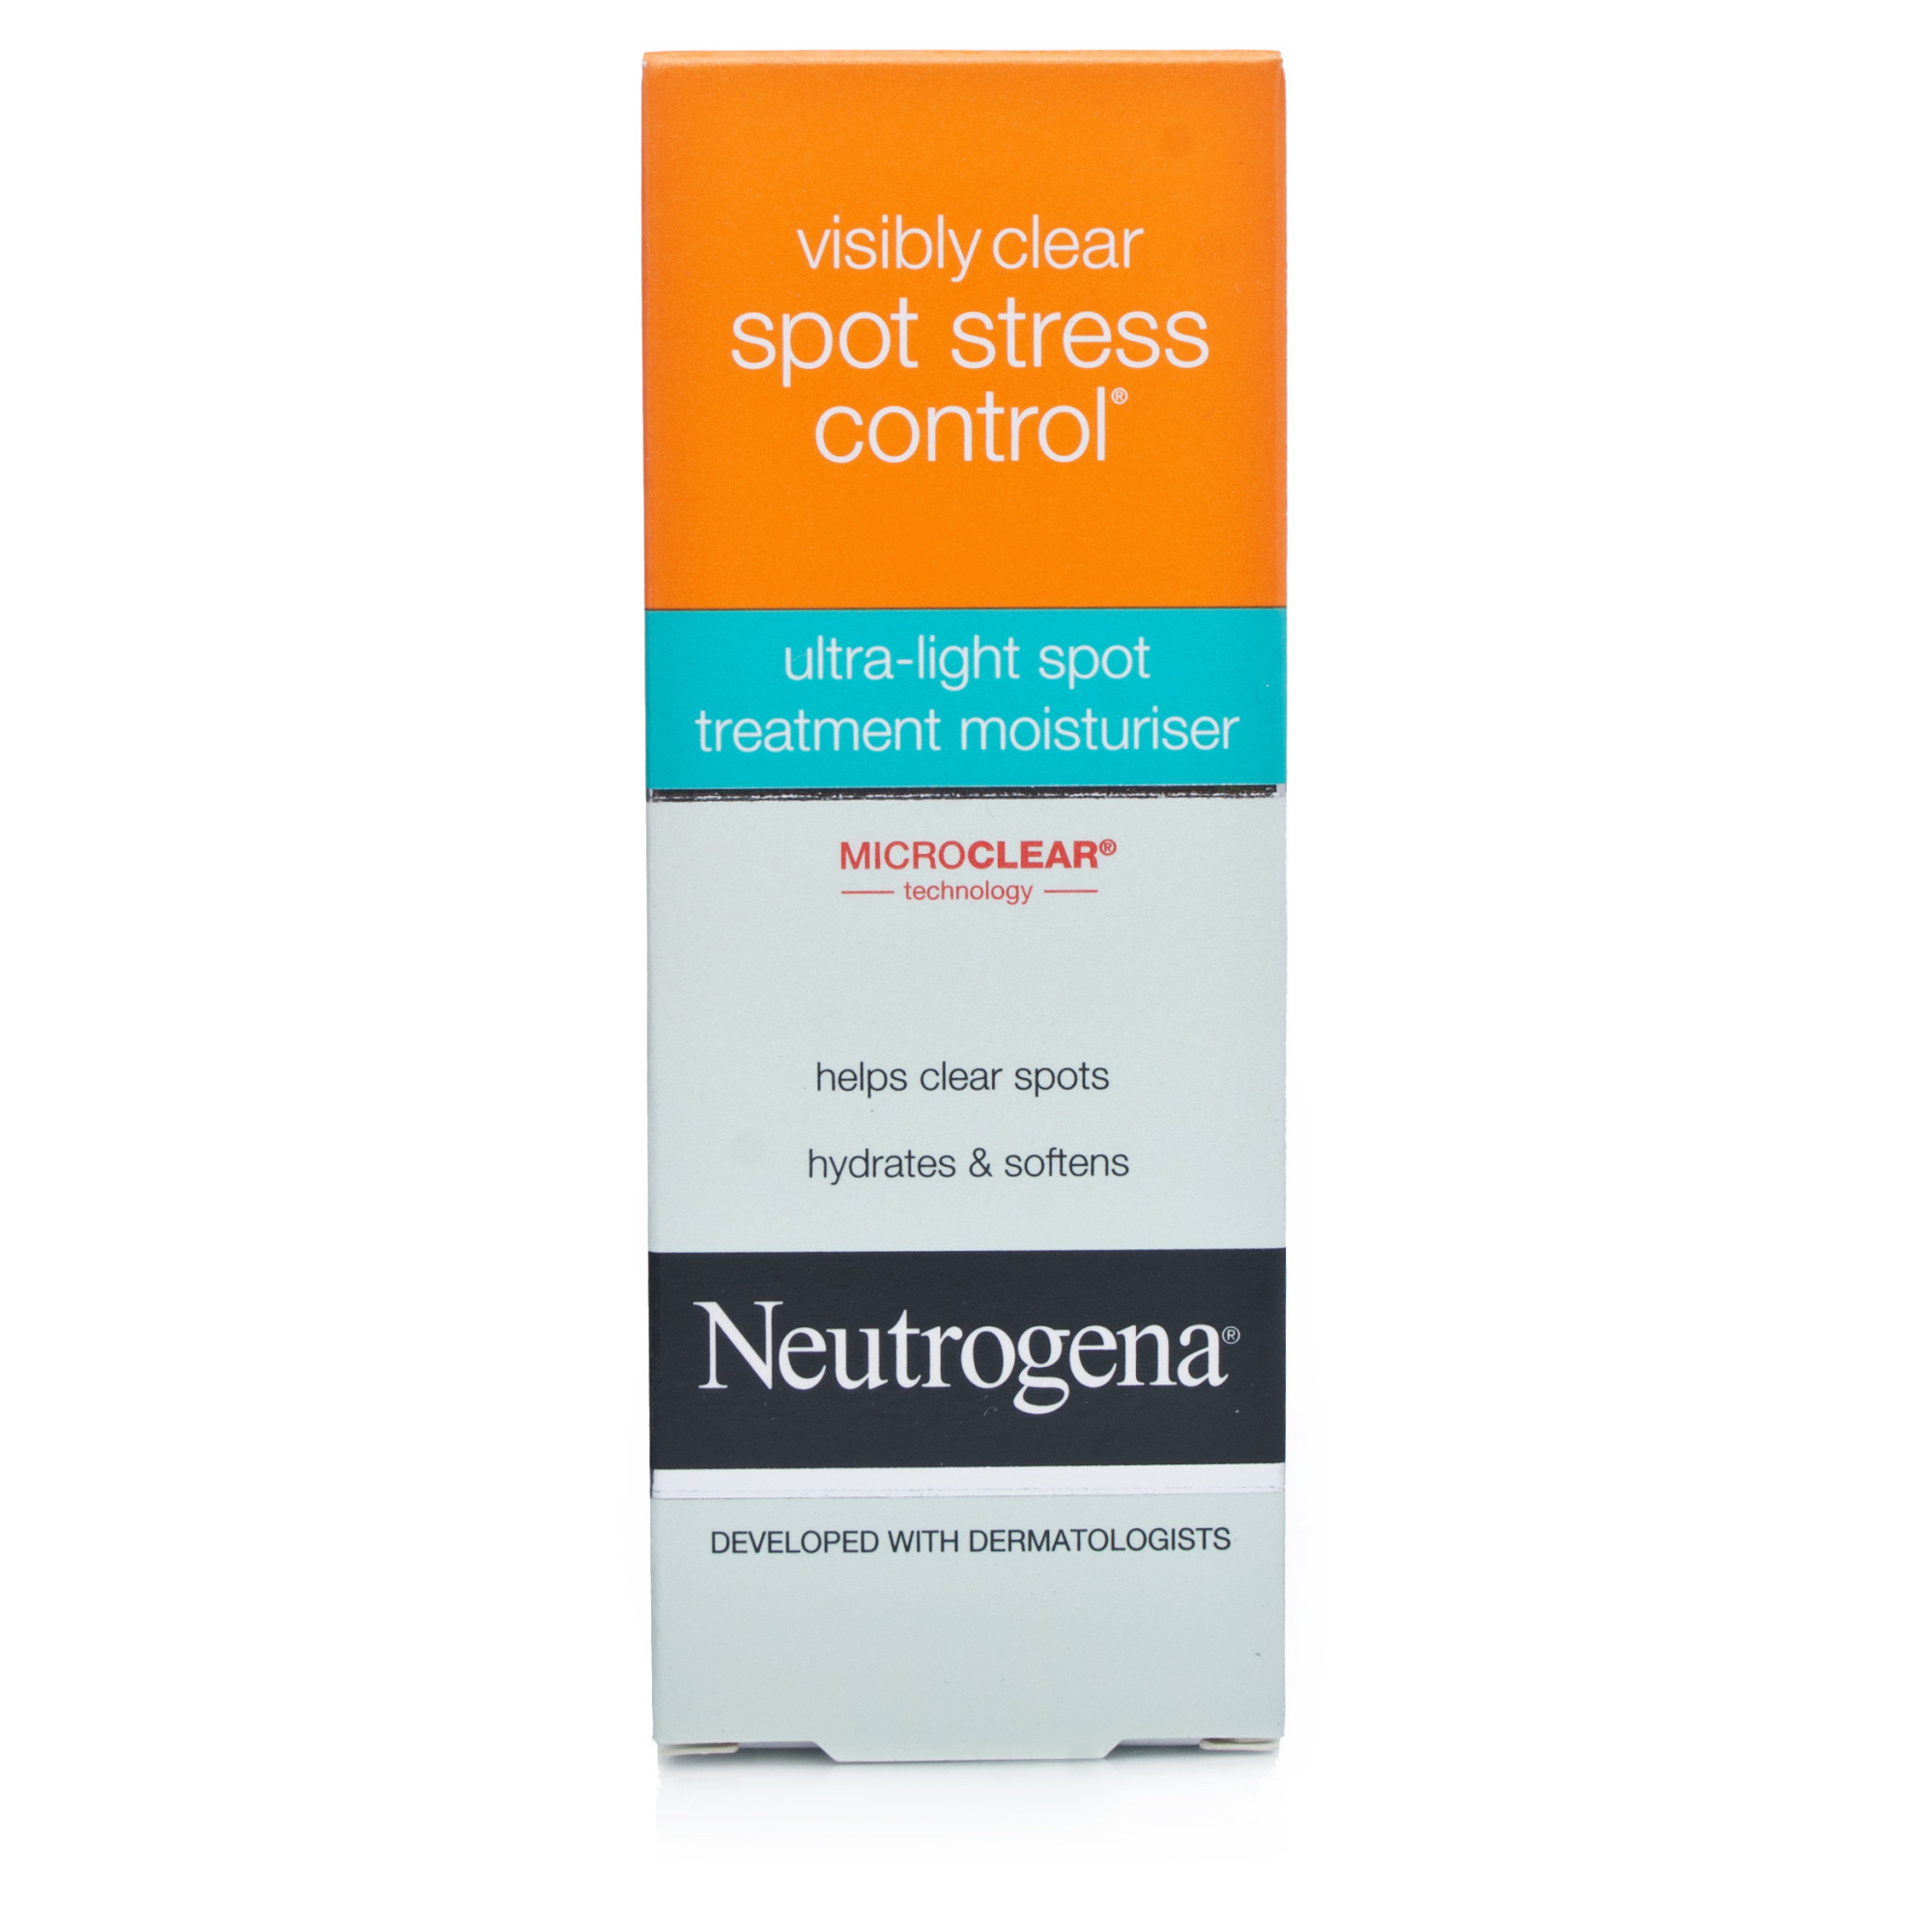 Neutrogena Visibly Clear Spot Stress Control Moisturising Cream